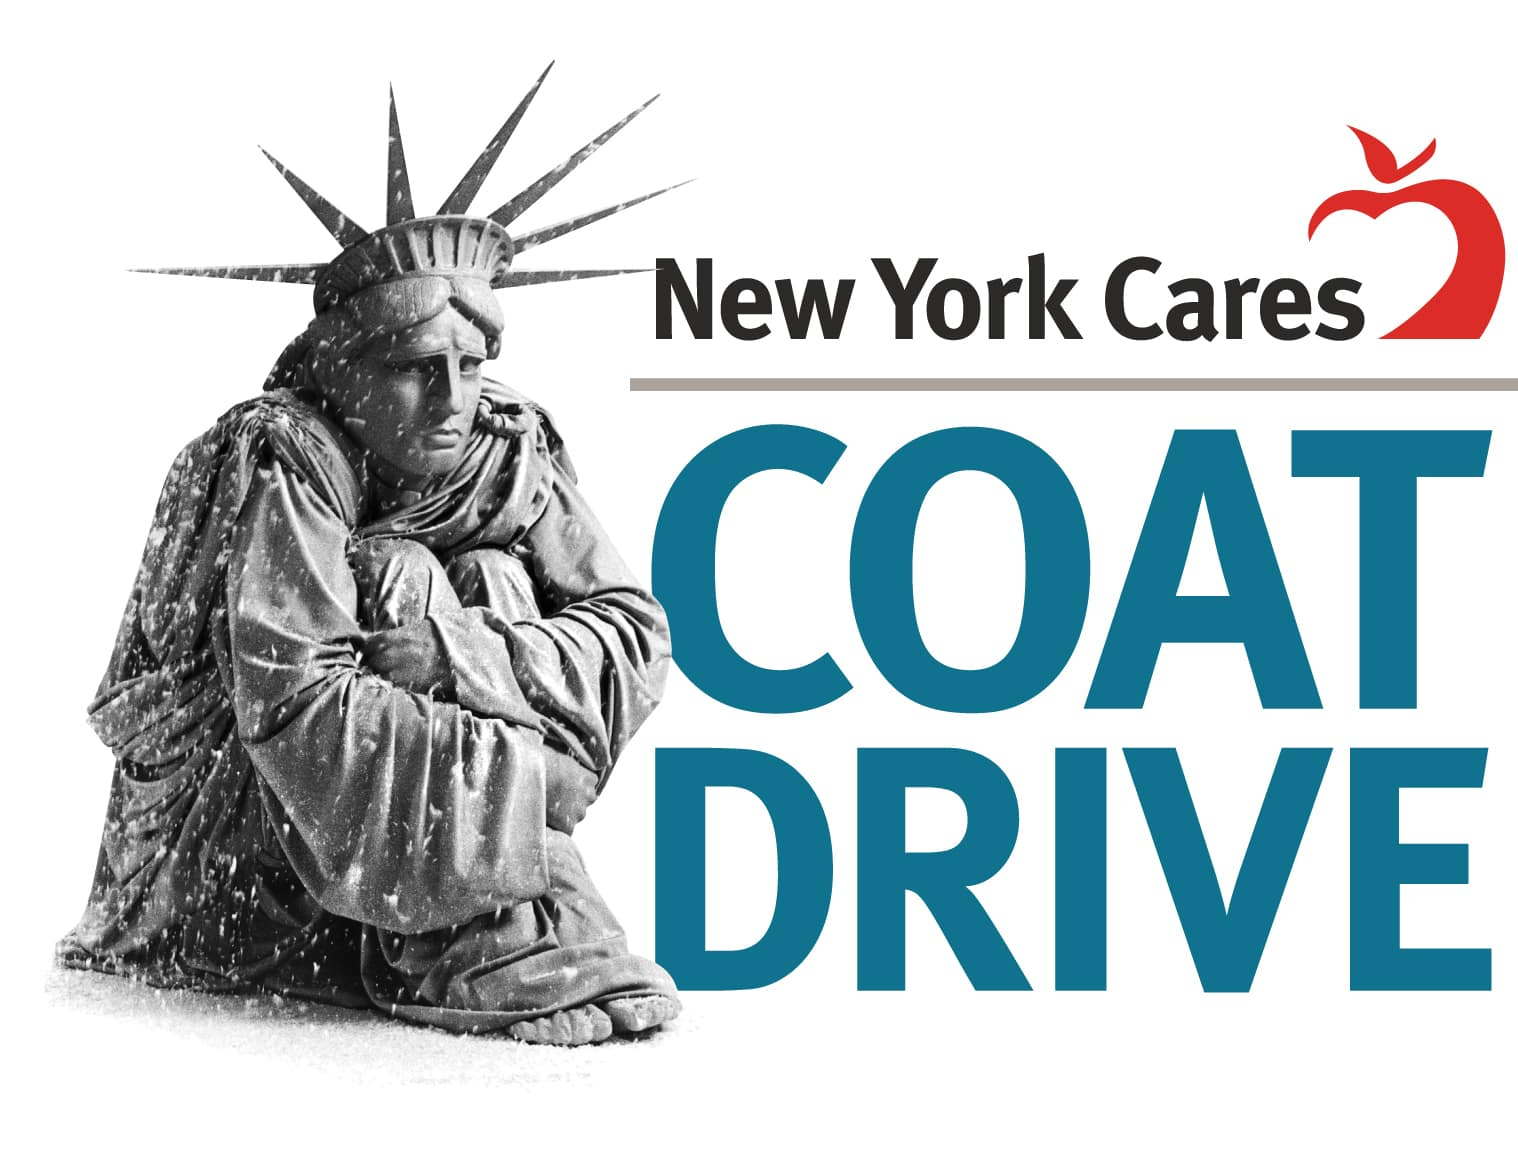 New York Cares - Coat Drive